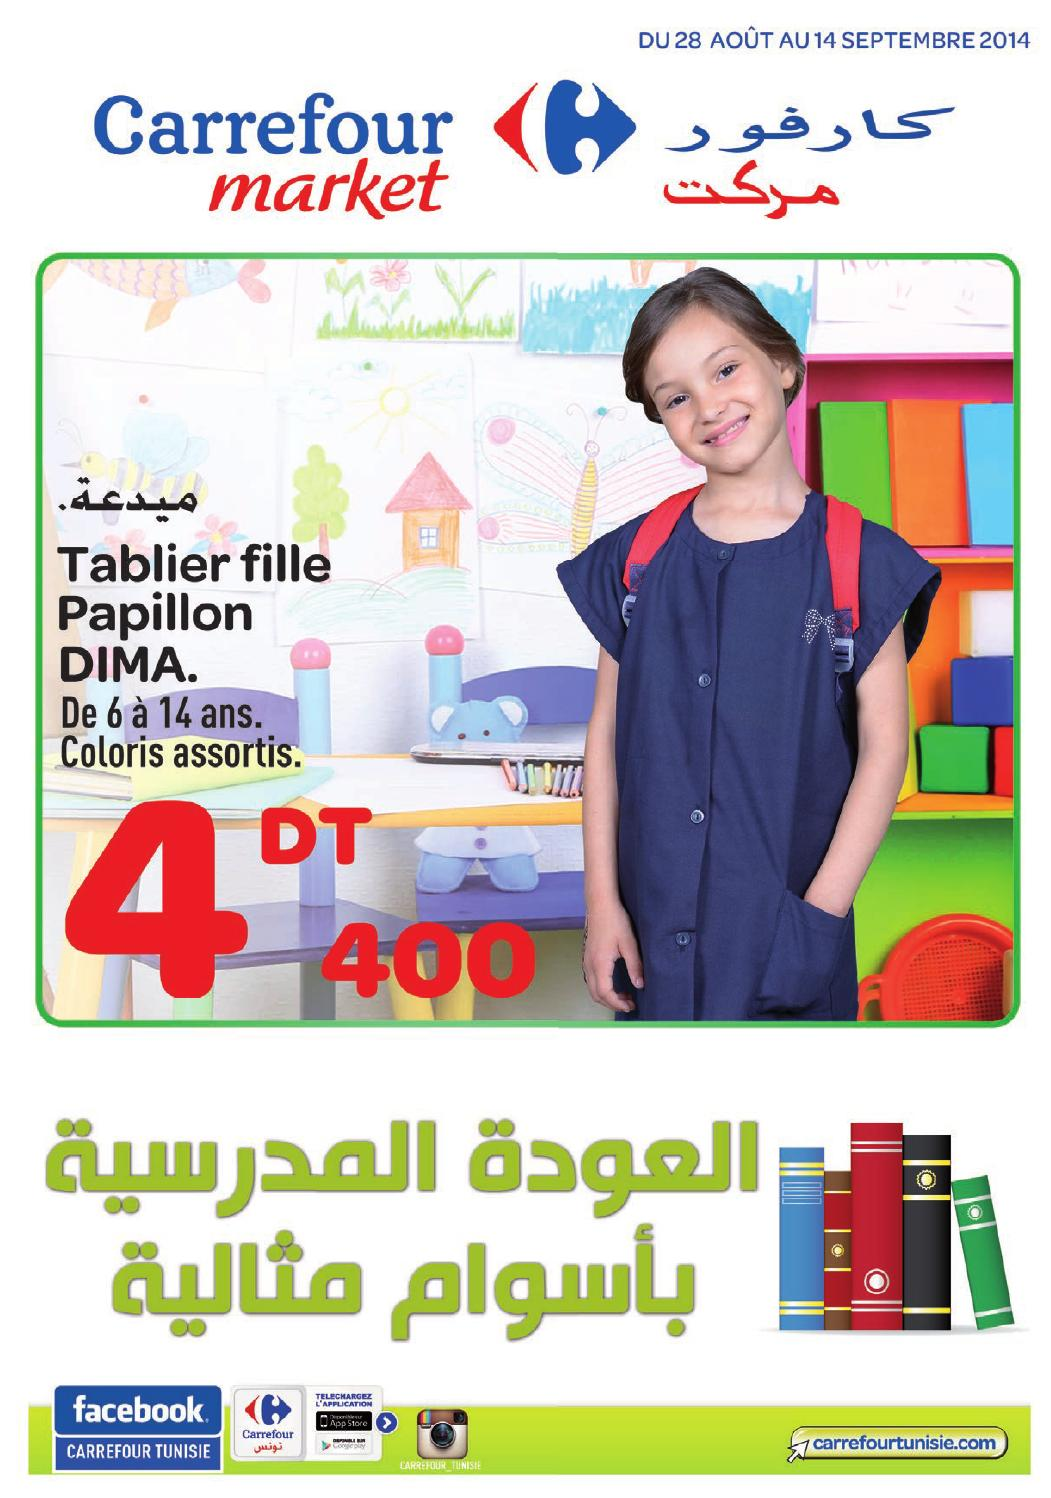 catalogue carrefour rentr e scolaire 2014 suite 2 by carrefour tunisie issuu. Black Bedroom Furniture Sets. Home Design Ideas